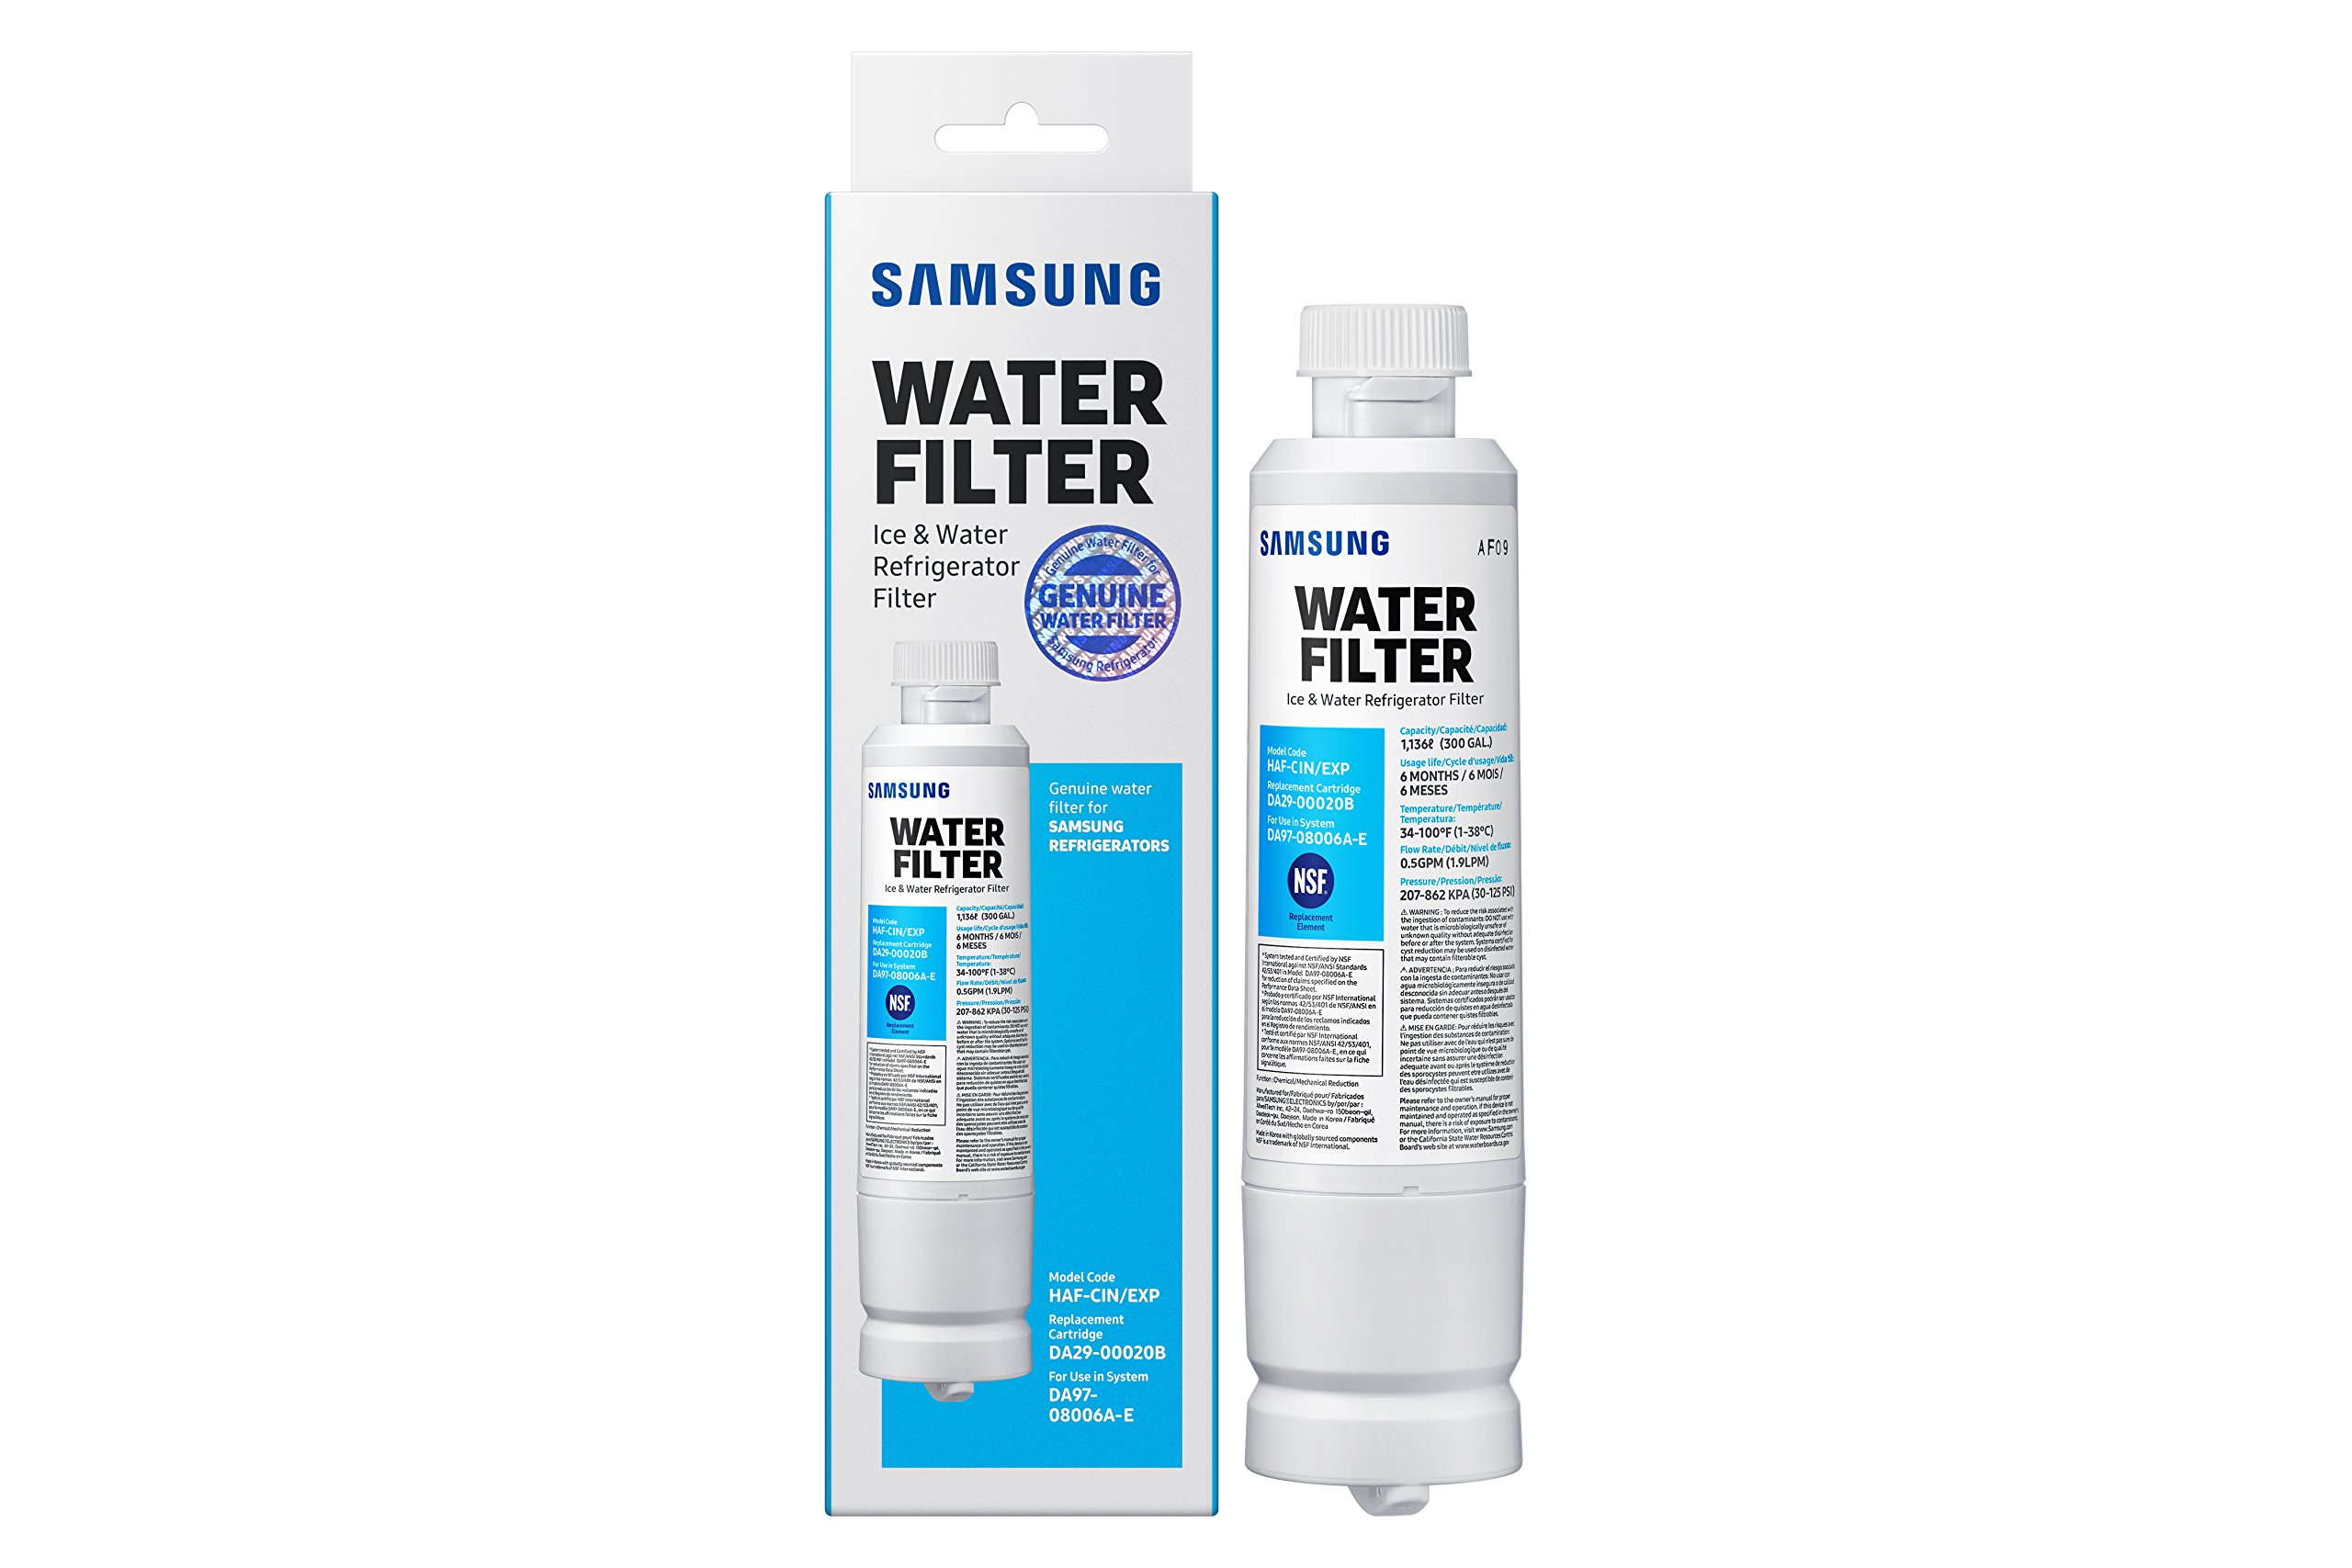 Samsung Genuine DA29-00020B Refrigerator Water Filter, 1 Pack (HAF-CIN/EXP)